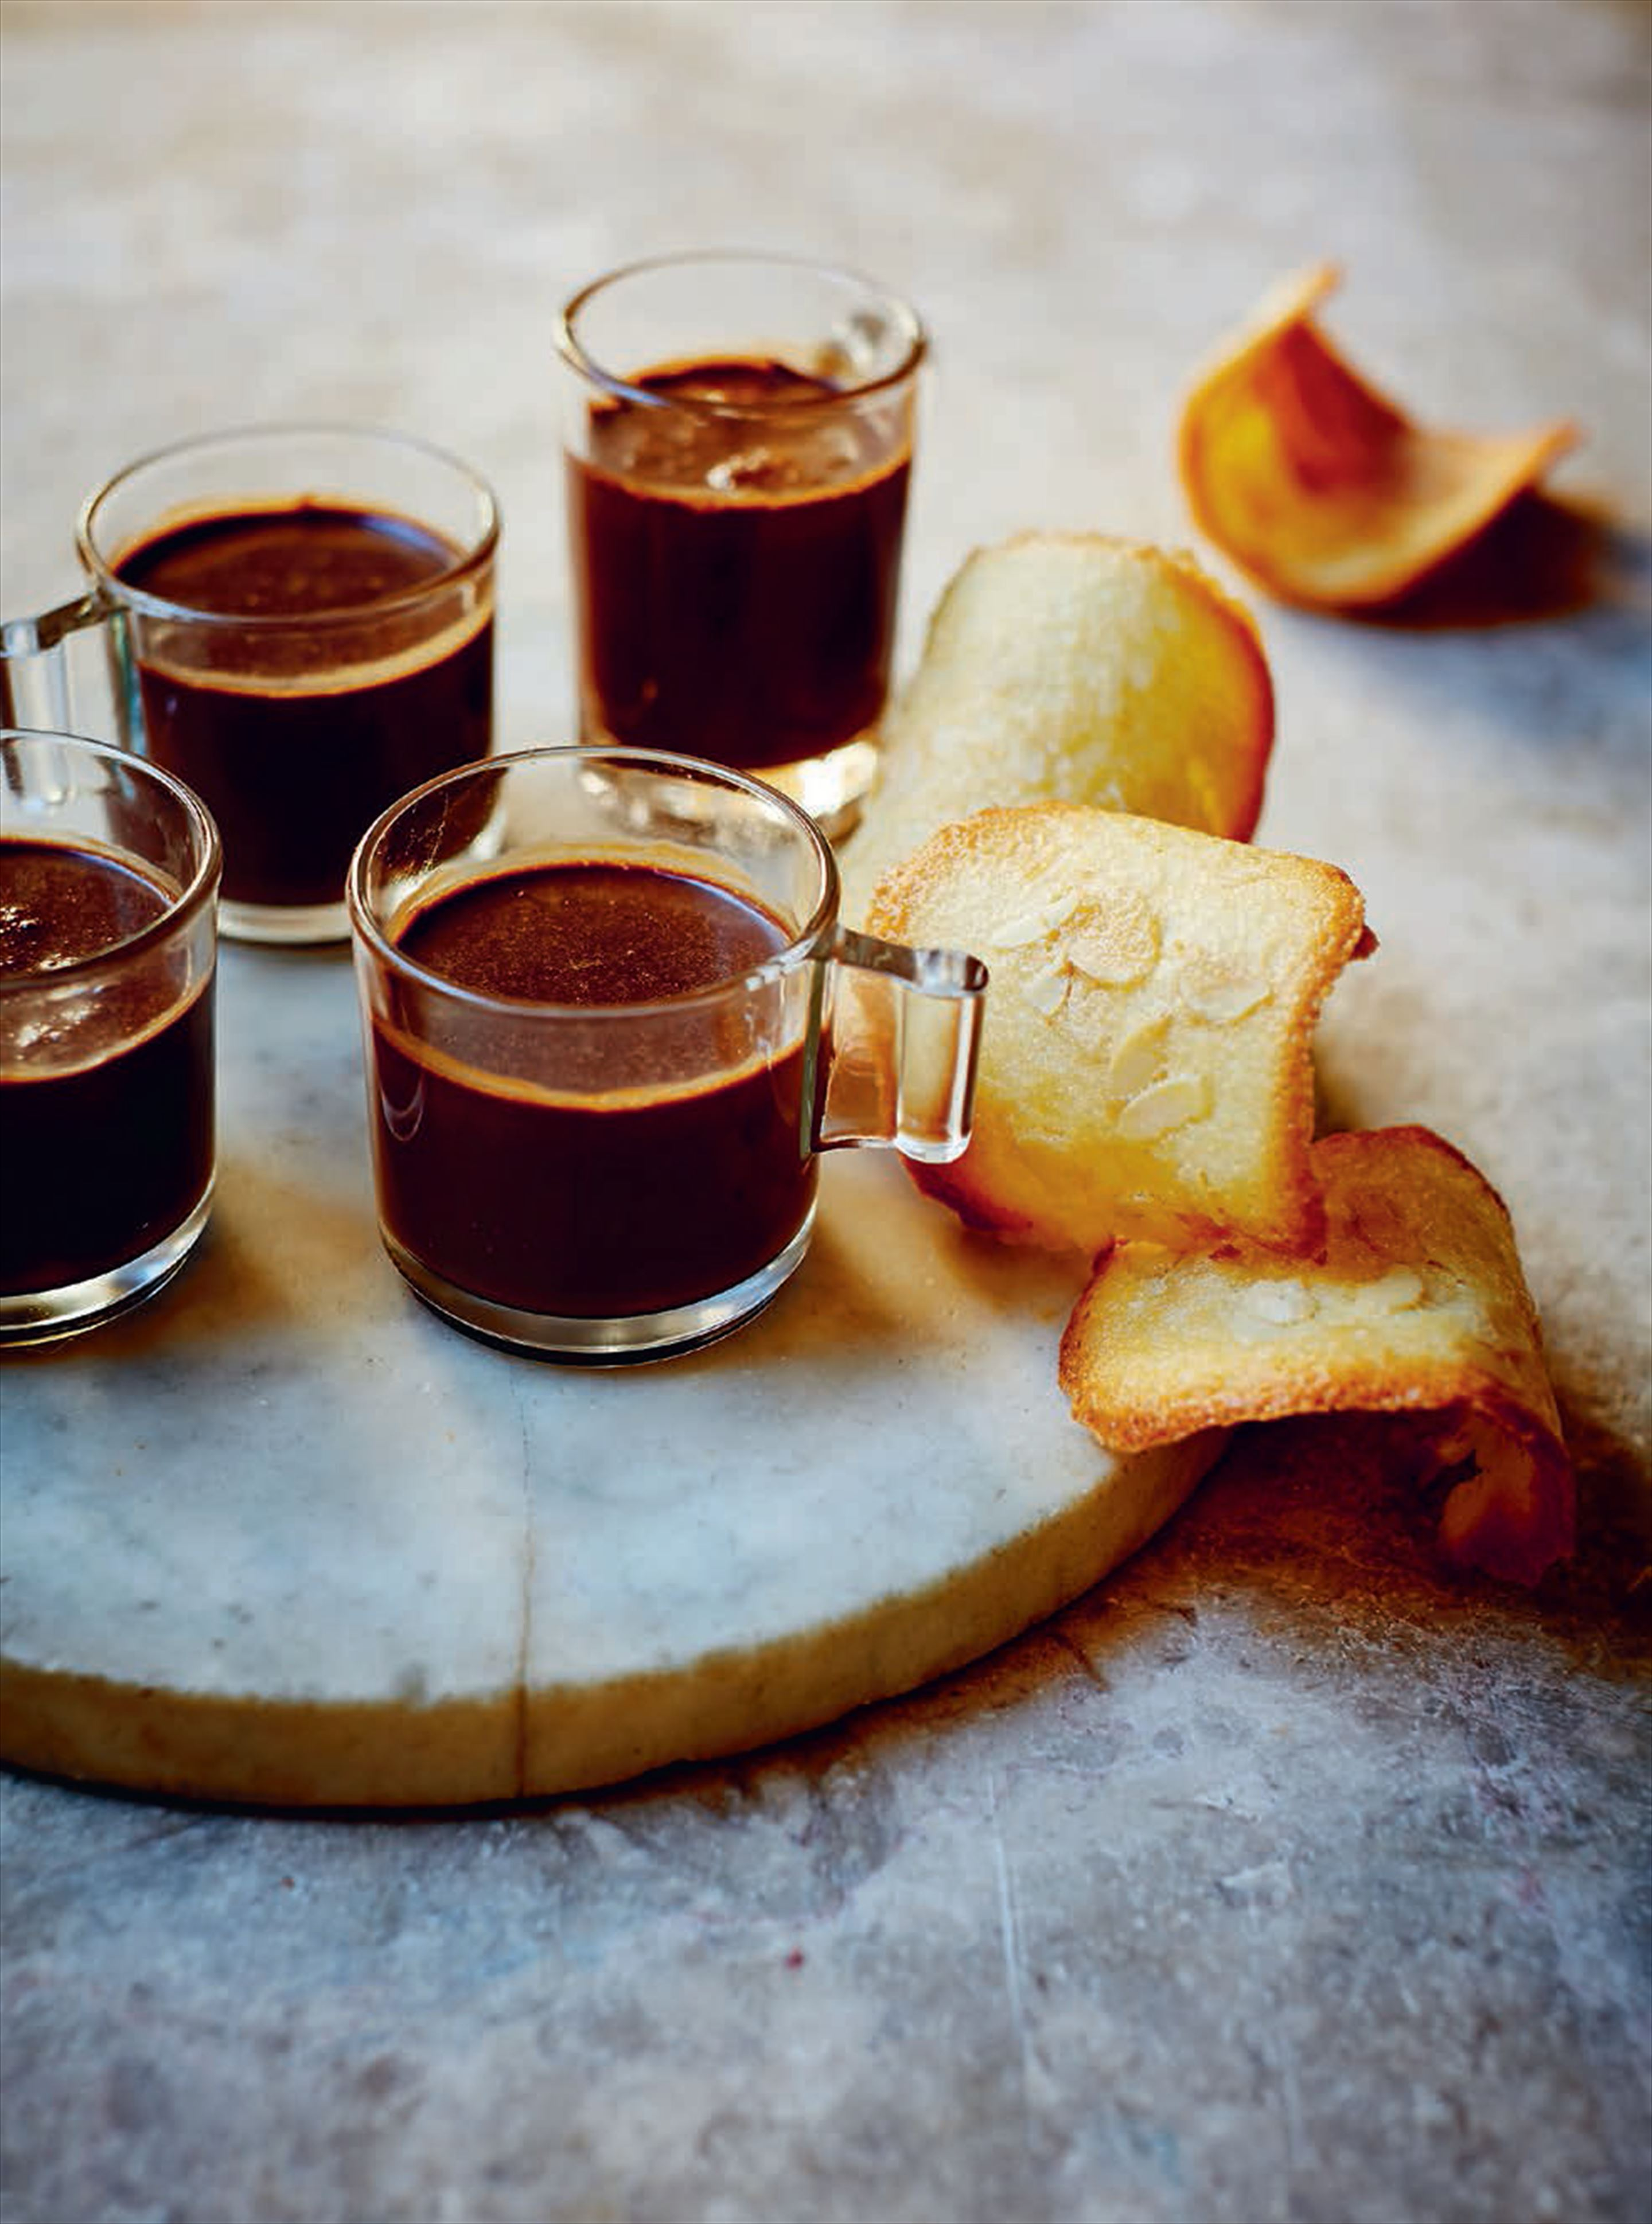 Chocolate pots with tejas de Tolosa